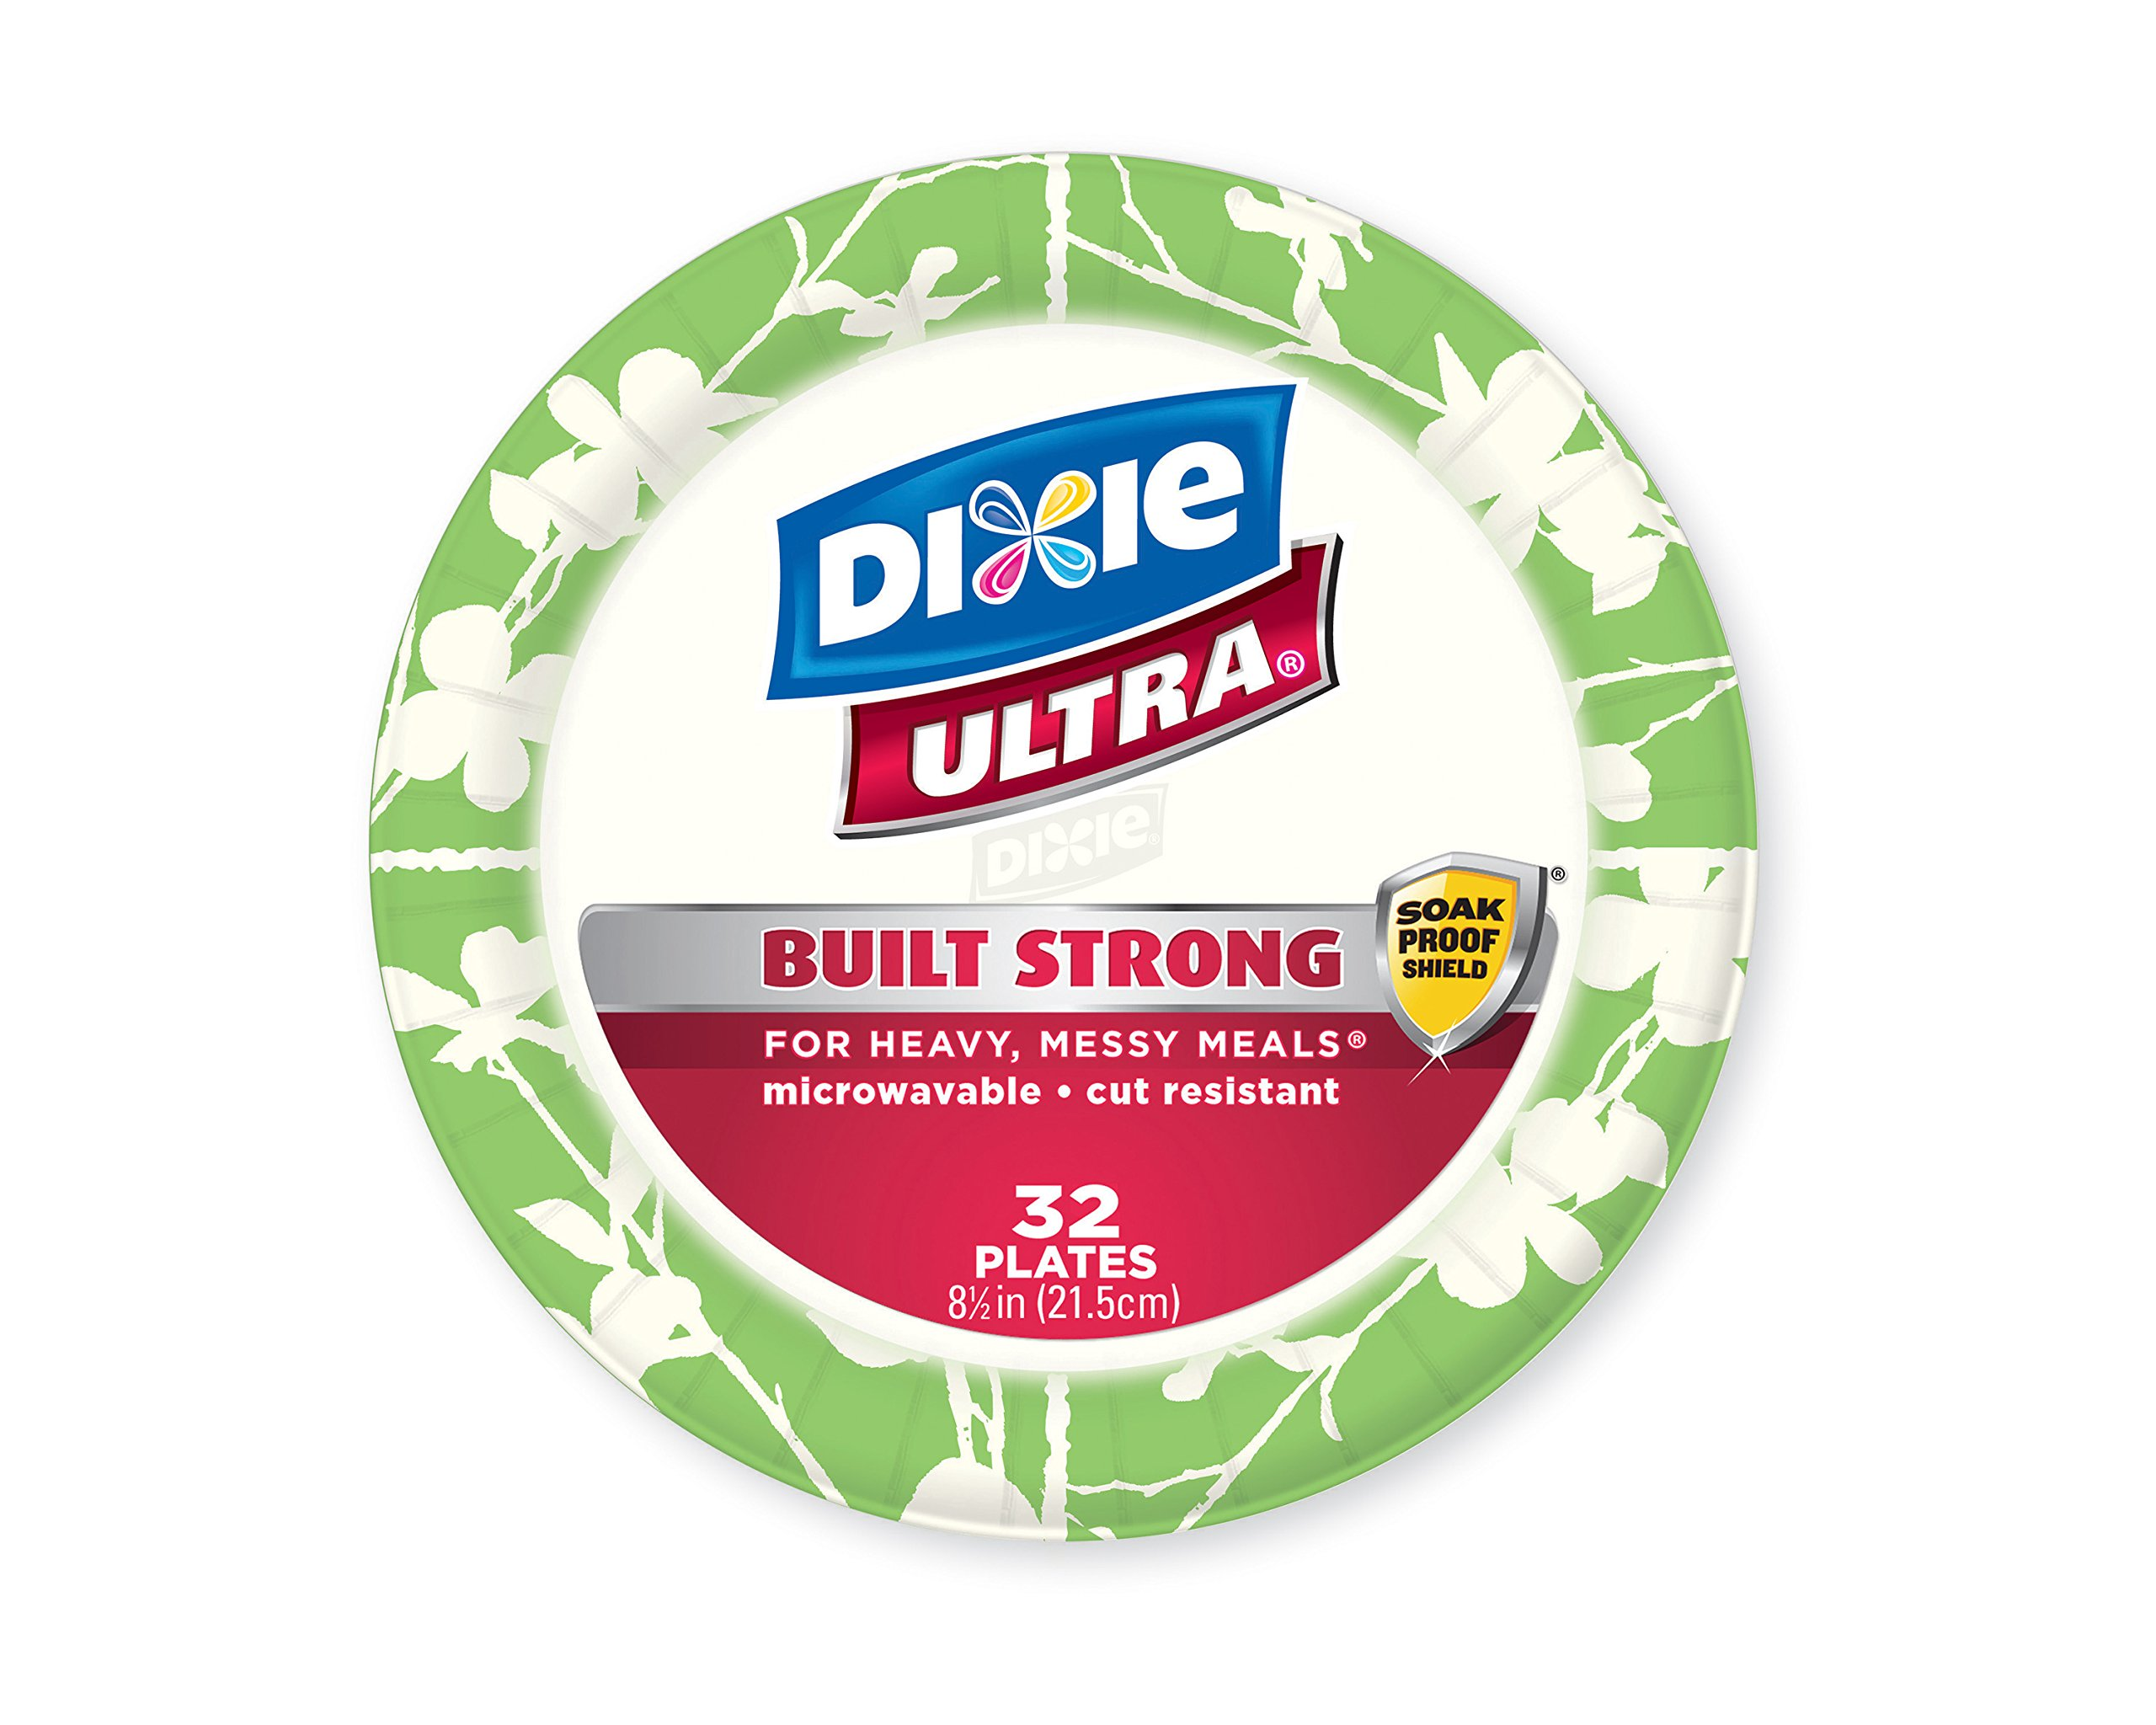 Dixie Ultra Disposable Plates 8 1/2 Inch 32 Count Design/  sc 1 st  Amazon.com & Amazon.com: Dixie Ultra Disposable Bowls 26 Count (Pack of 4 ...